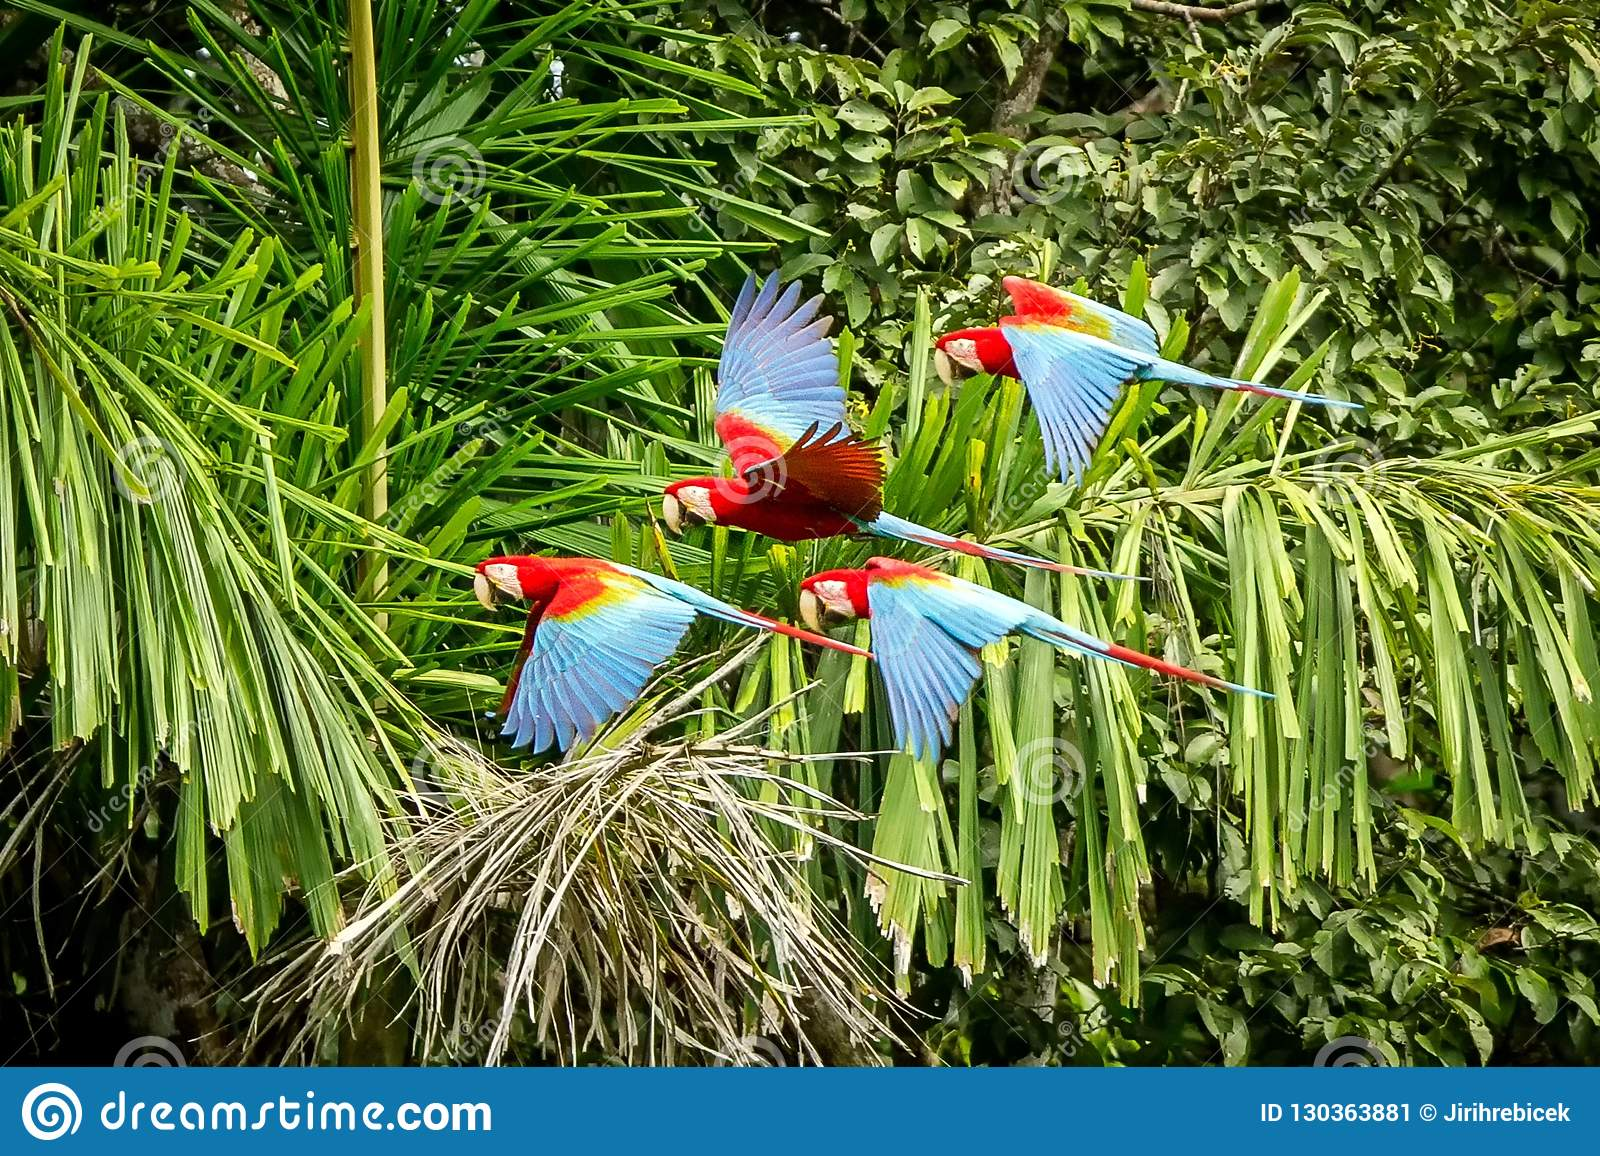 Flock of red parrot in flight. Macaw flying, green vegetation in background. Red and green Macaw in tropical forest, Peru,Wildlife